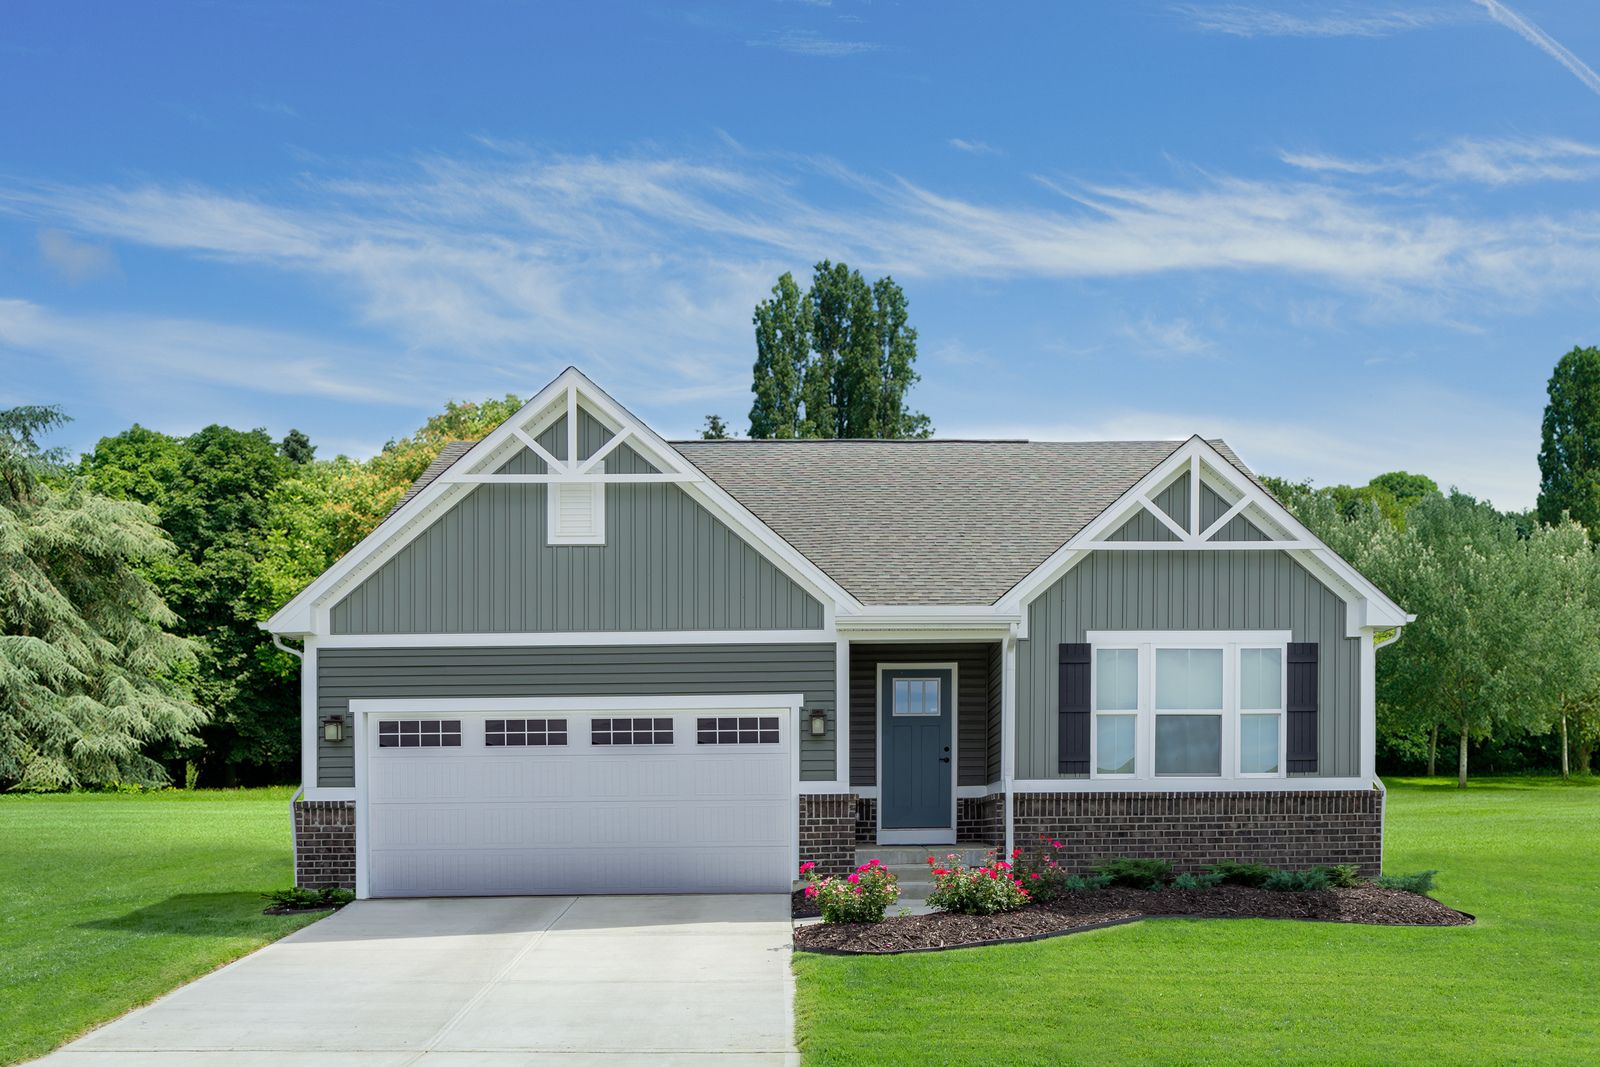 WELCOME HOME TO LEXINGTON PLACE:Peaceful community setting featuring ranch & 2-story homes with available full basements! Wooded & cul-de-sac yards up to 1/3-acre. From the $220s.Click here to schedule your visit!